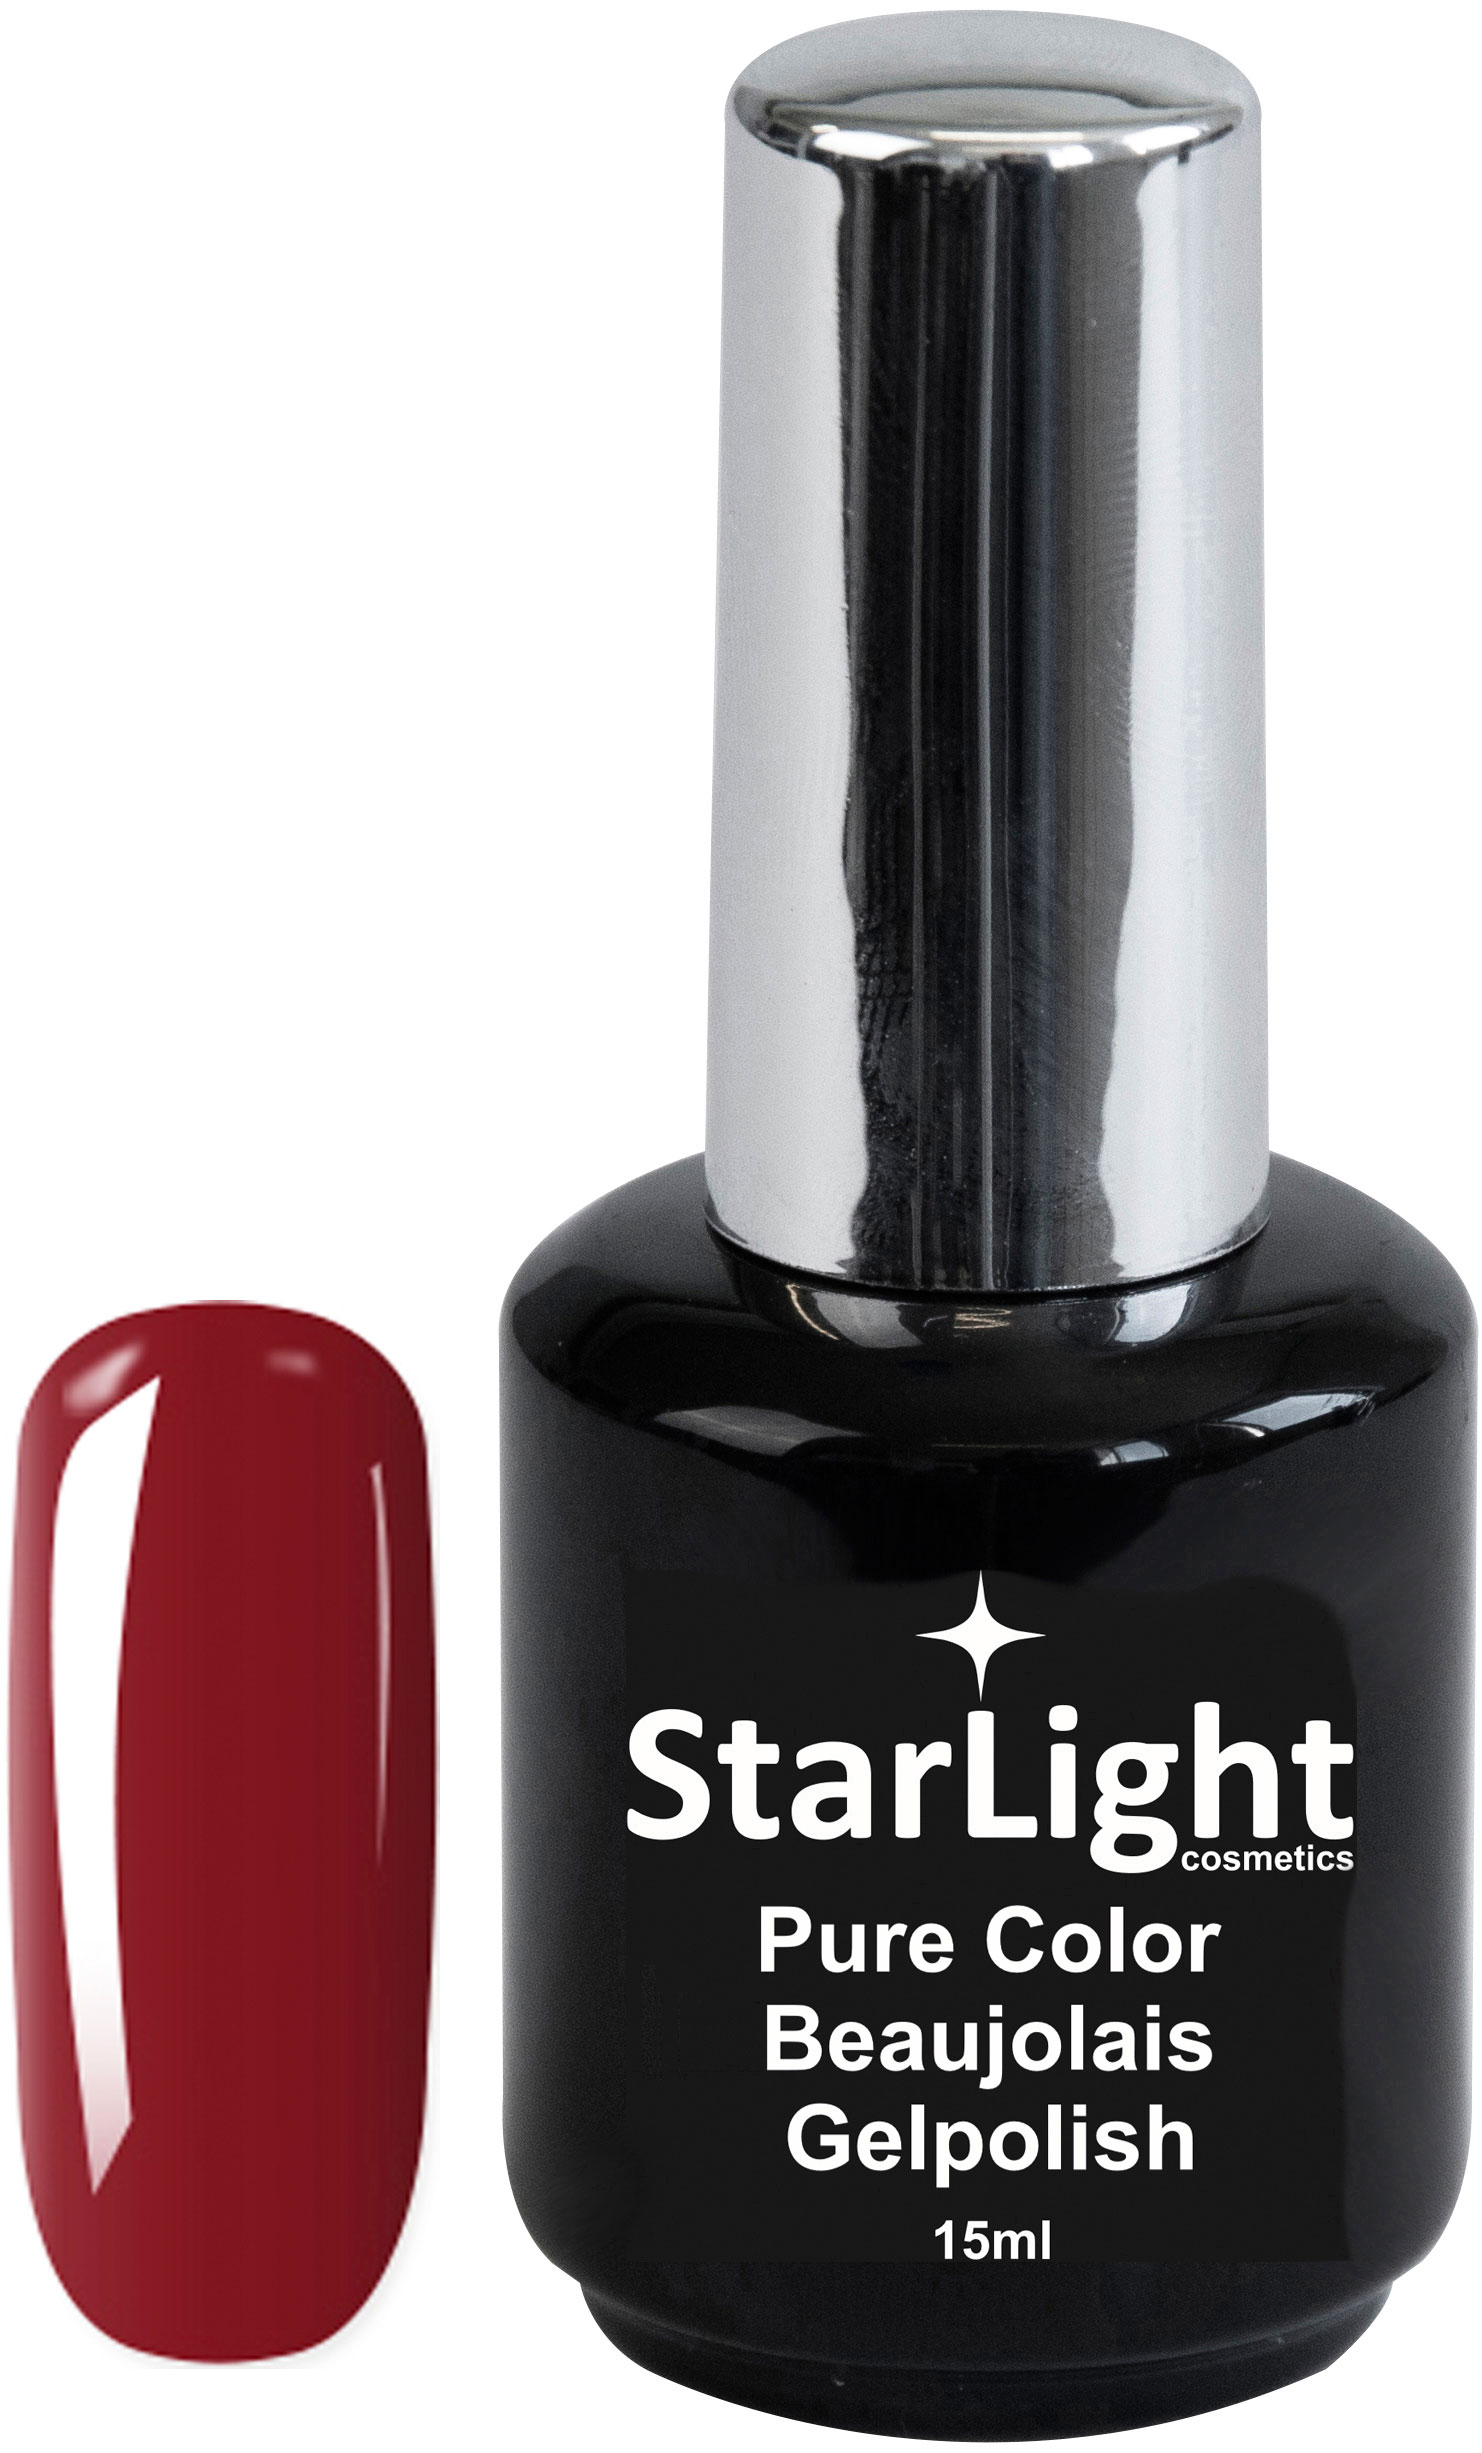 Naglar Gelpolish Pure Color Beaujolais - 15 ml